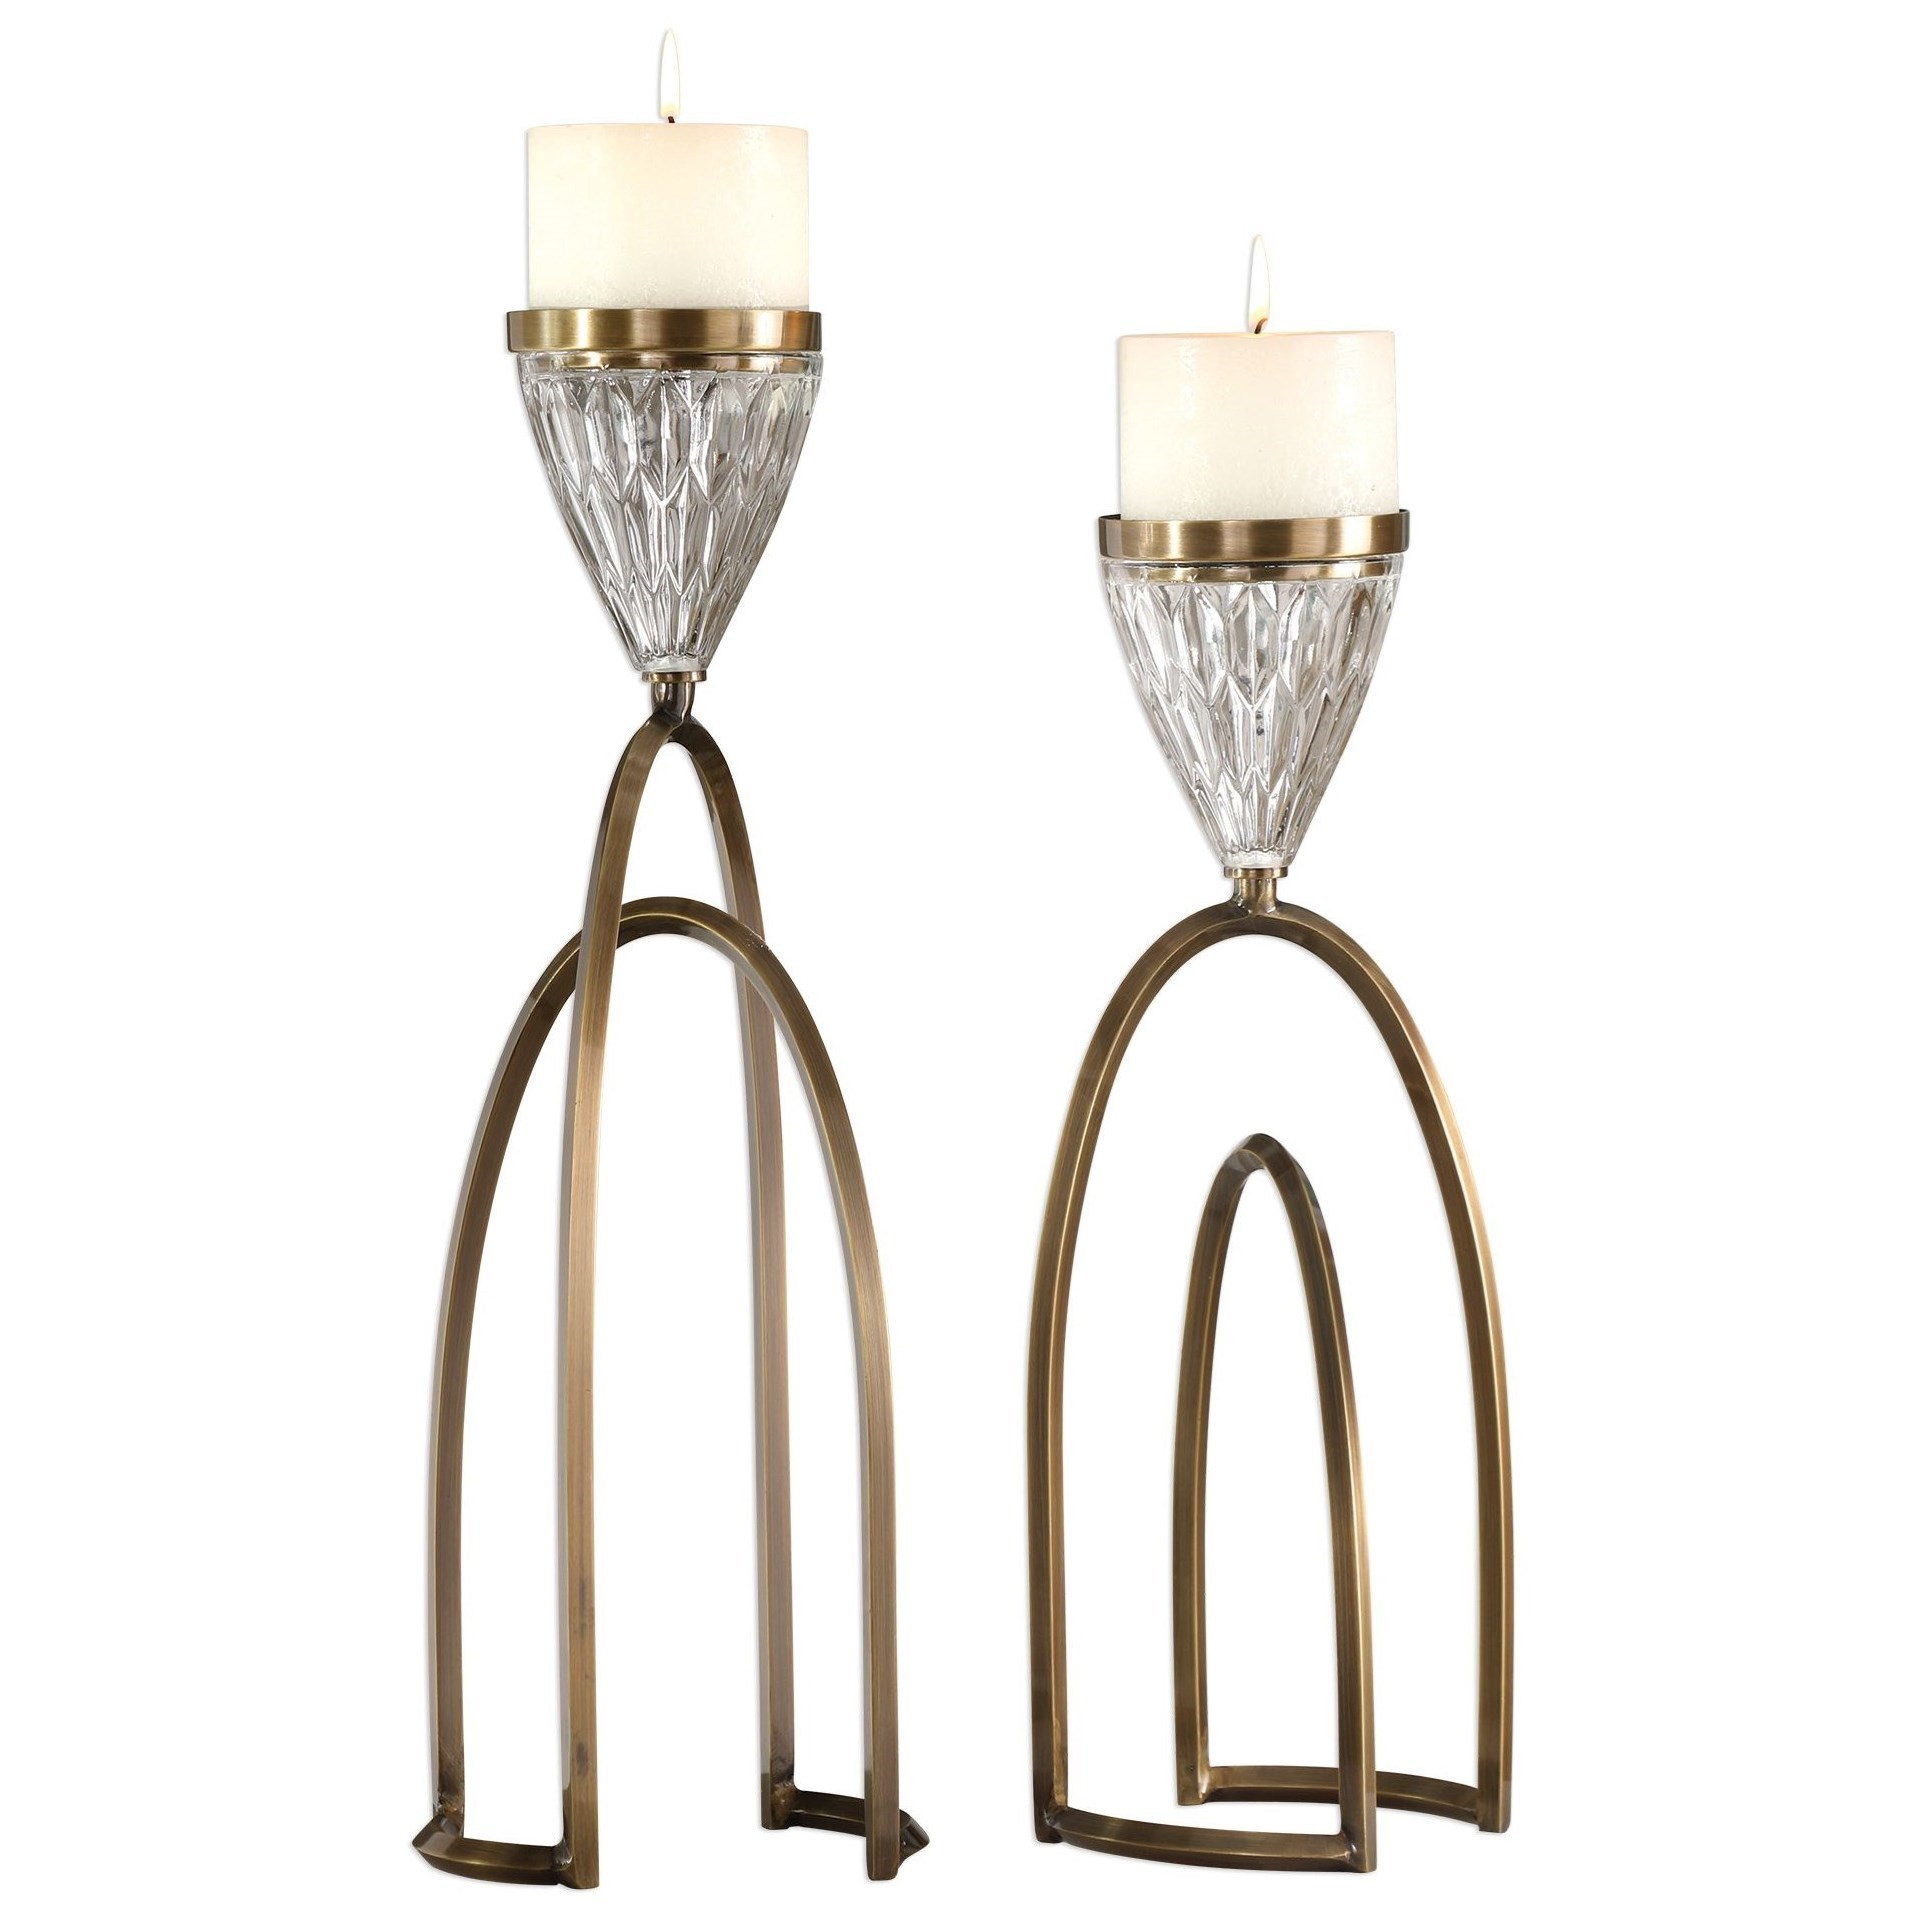 Accessories - Candle Holders Carma Bronze And Crystal Candleholders by Uttermost at Dunk & Bright Furniture